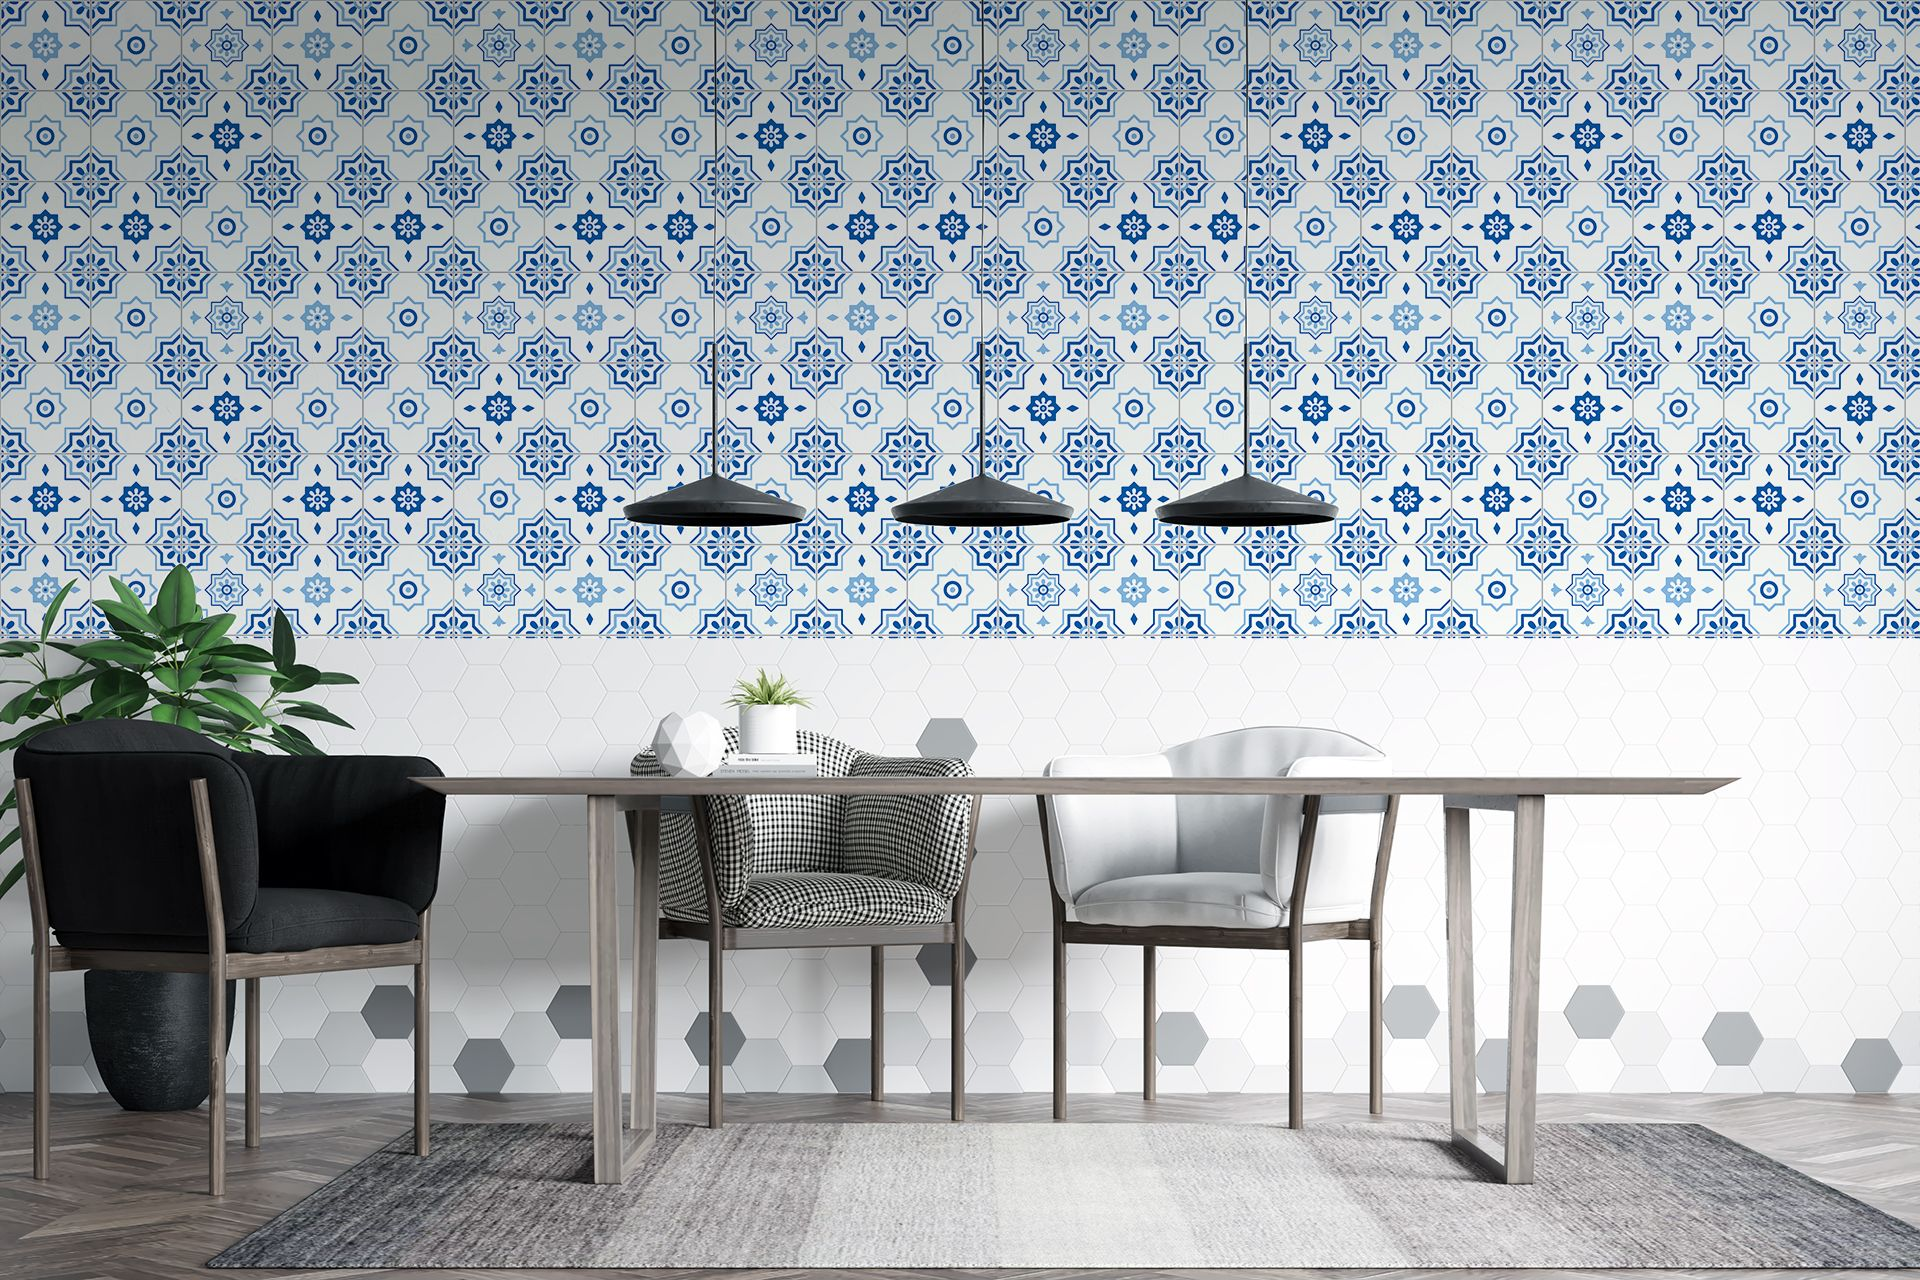 Get these non-toxic, Self Adhesive, Handmade Removable Wallpaper. Environmentally conscious WallaWall Wallpaper, it will give the rooms in your home a touch of colorful magical decor. You can get these by clicking the pin.😎 #wallpaper #wallpapers #interiordesign #d #wallpapermurah #wallpaperdinding #homedecor #art #design #wallpapersticker #interior #love #photography #wallpaperdecor #wallsticker #like #anime #walldecor #dekorasirumah #aesthetic #instagram #follow #decor #wallcovering #wallpap